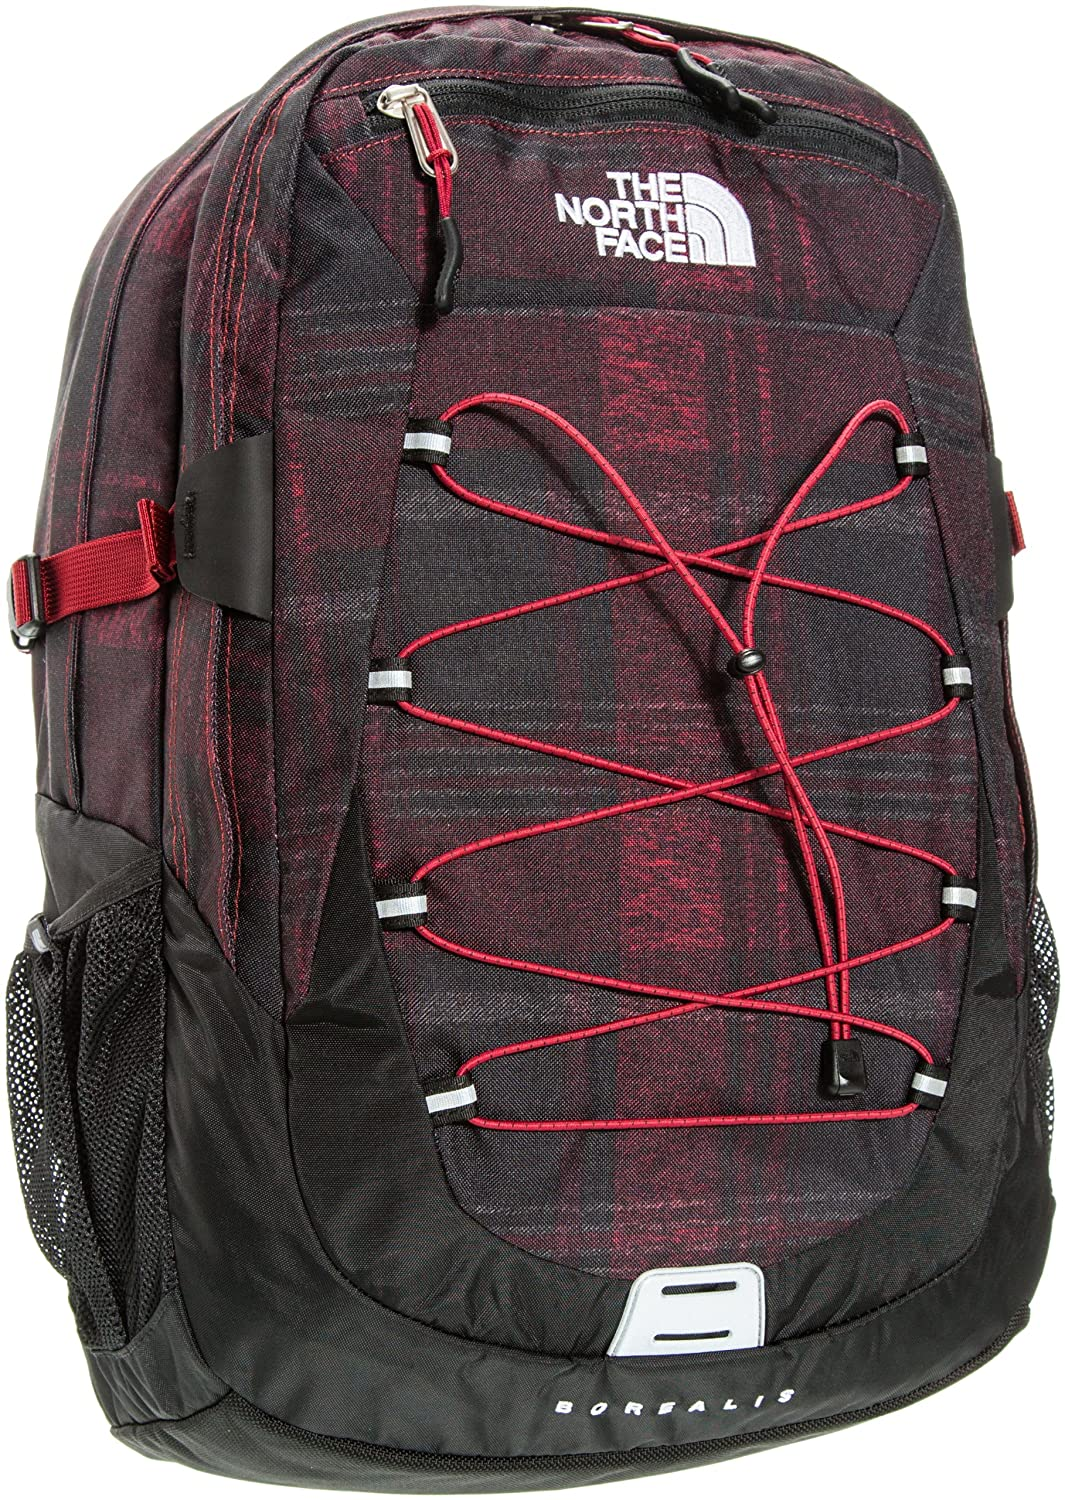 Northface Borealis Backpack review